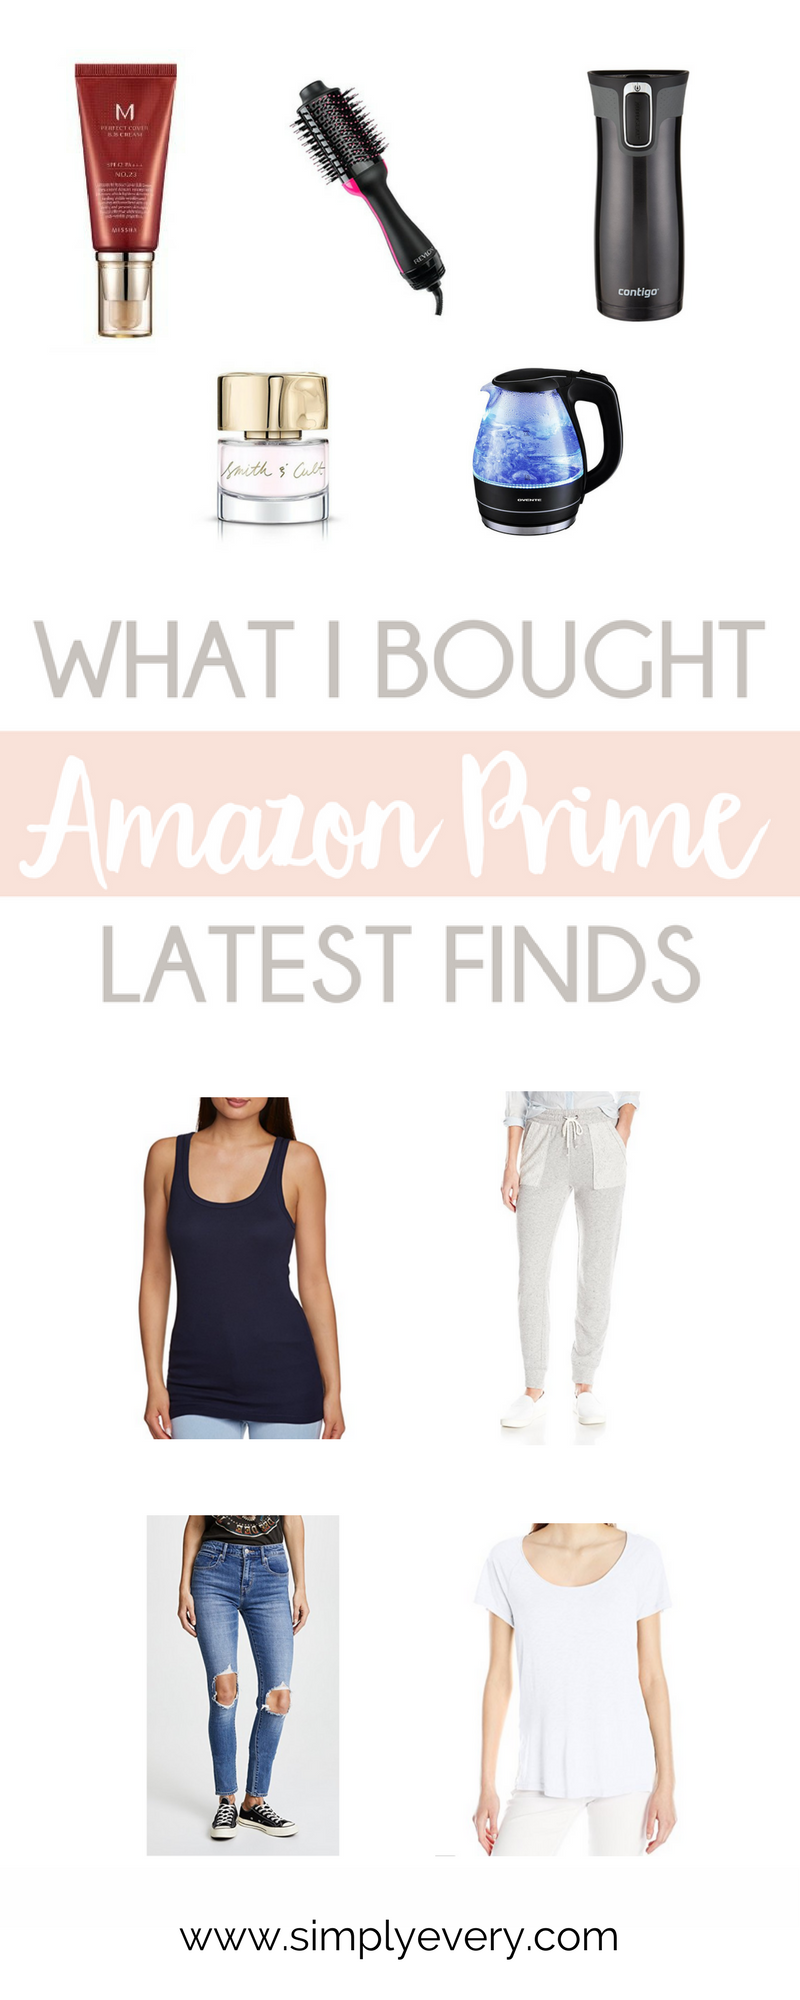 What I Bought: Amazon Prime Latest Finds